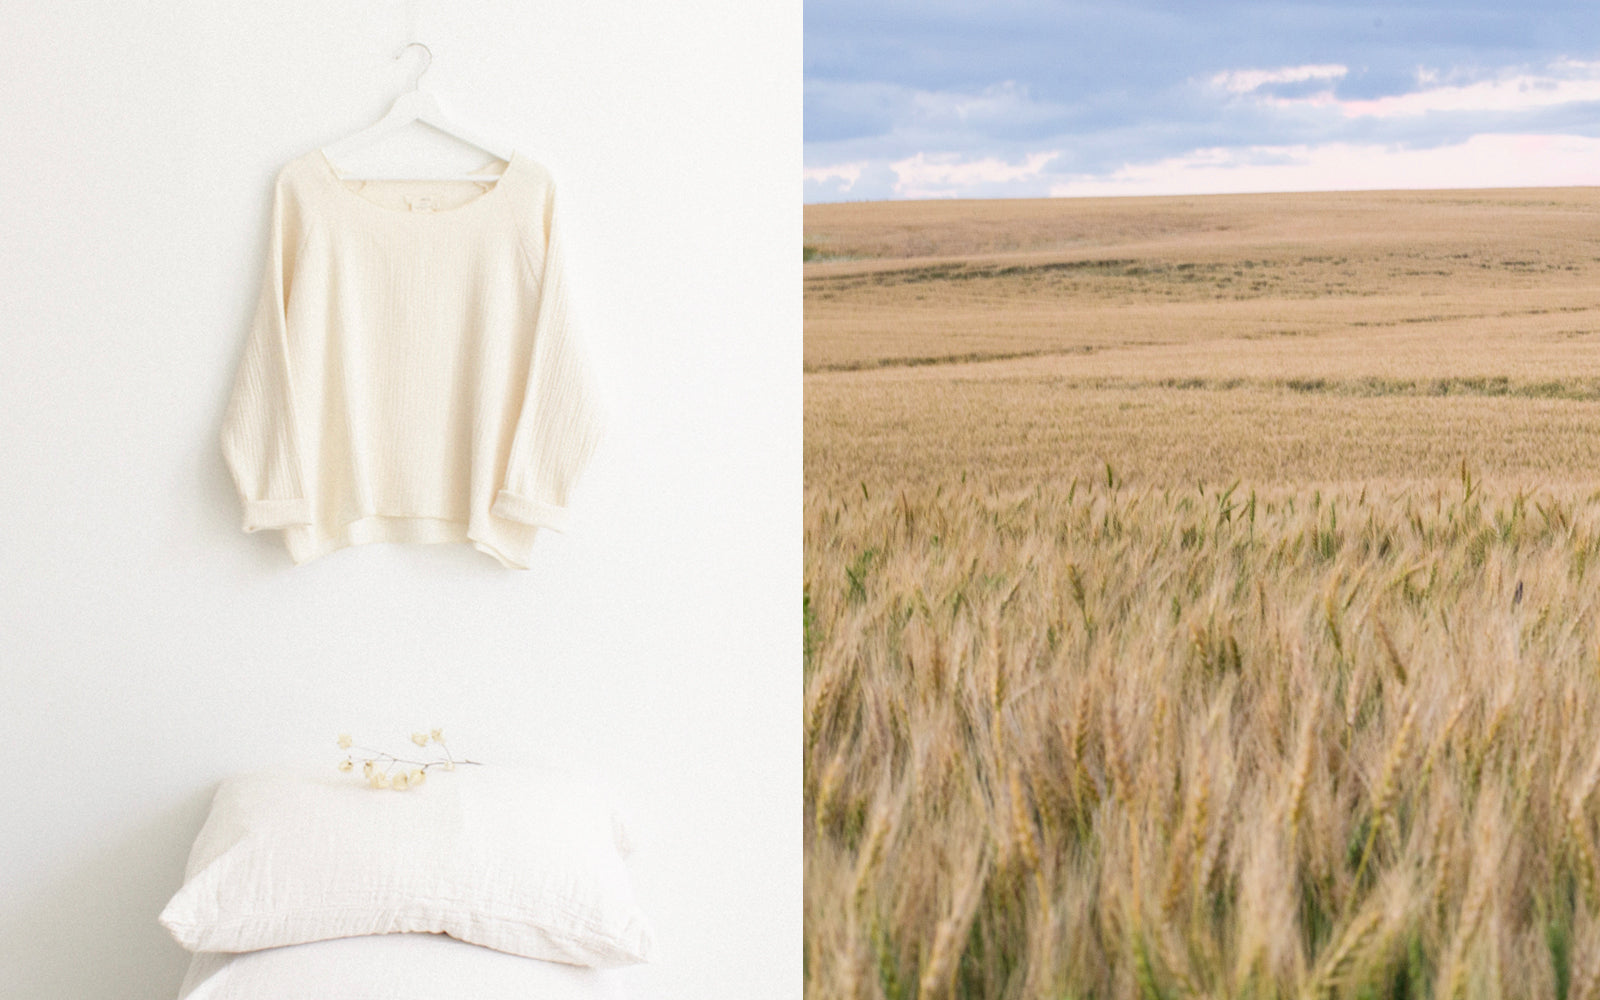 Cream shirt hanging next to a photo of a wheat field.